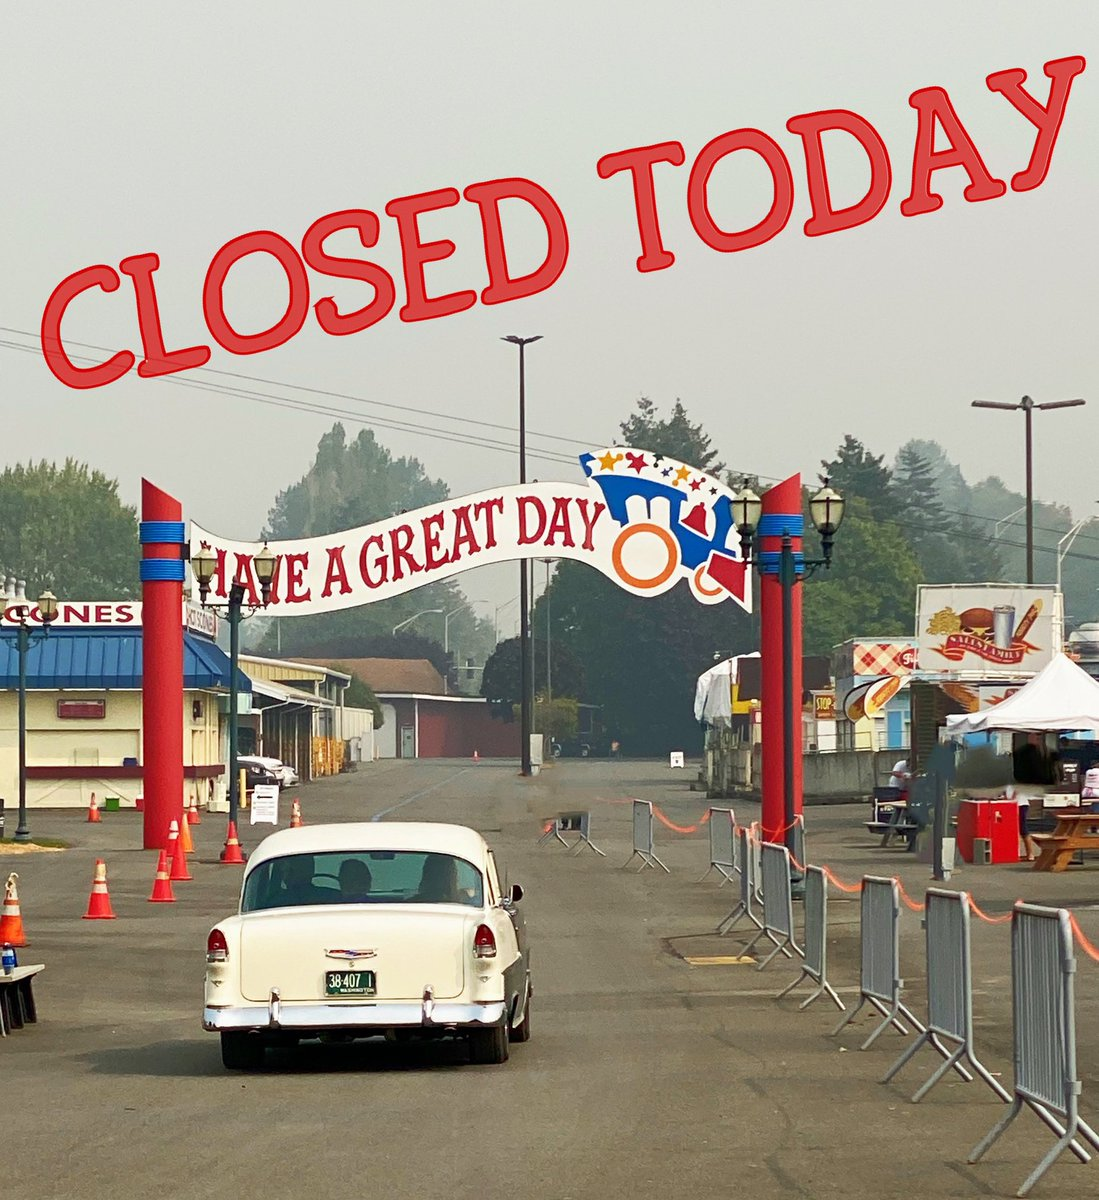 Due to ongoing poor air quality, and the safety of our staff, vendors and guests, the Washington State Fair Food-To-Go Drive-Thru will be closed again today. Check here & our website for updates. Stay safe. https://t.co/dWYfyYCrYz